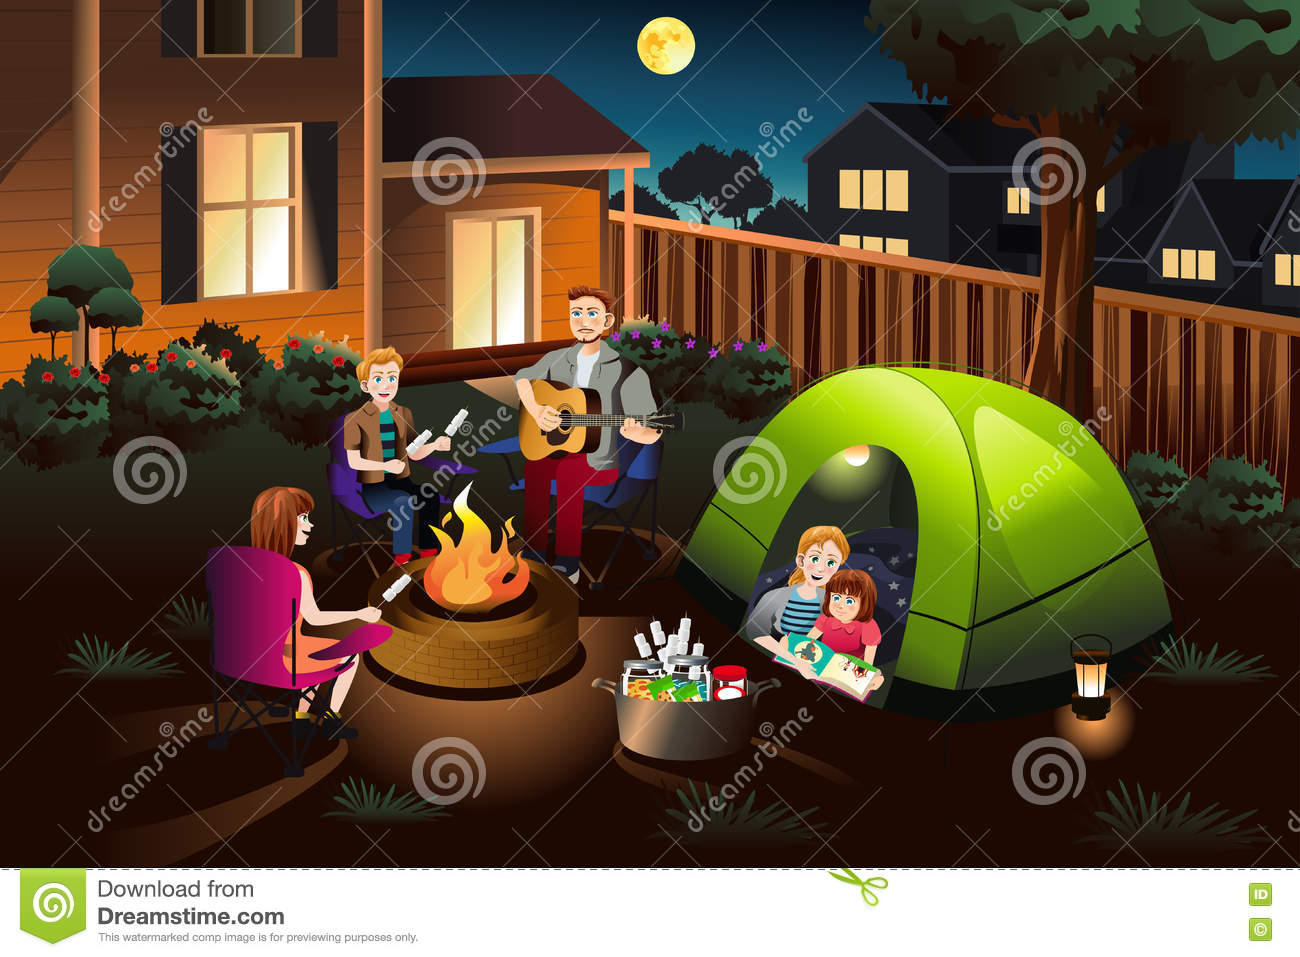 Family Backyard Camping :  vector illustration of happy family camping together in the backyard